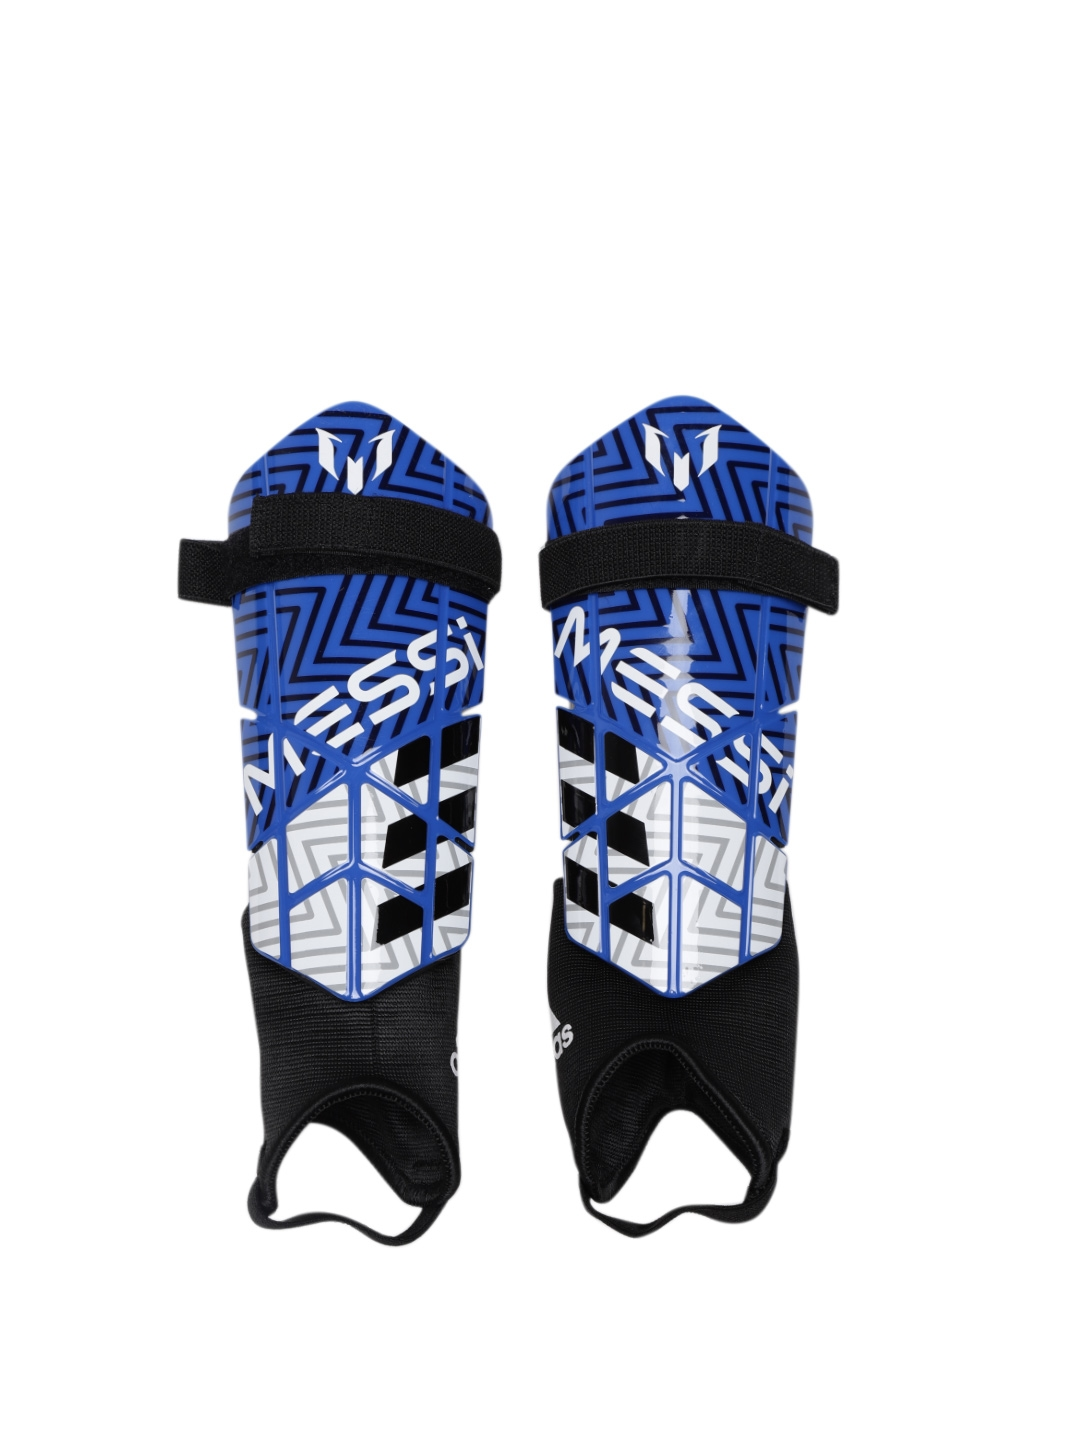 Buy ADIDAS Unisex Blue Messi 10 Youth Soccer Shin Guards - Sports ... c7701cb8ab